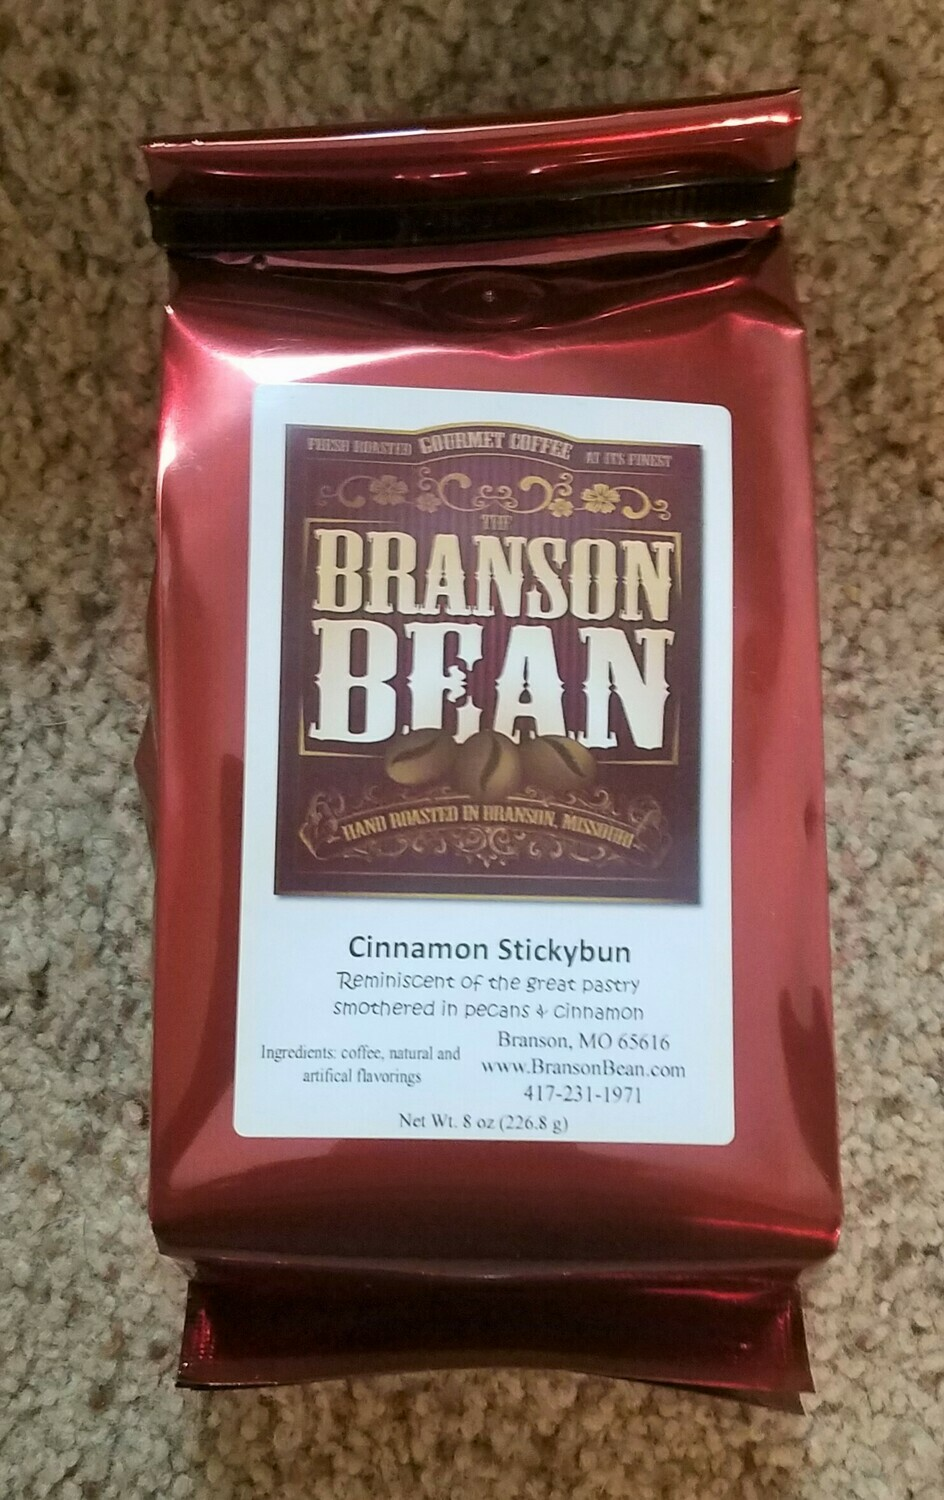 Branson Bean Coffee - Cinnamon Stickybun